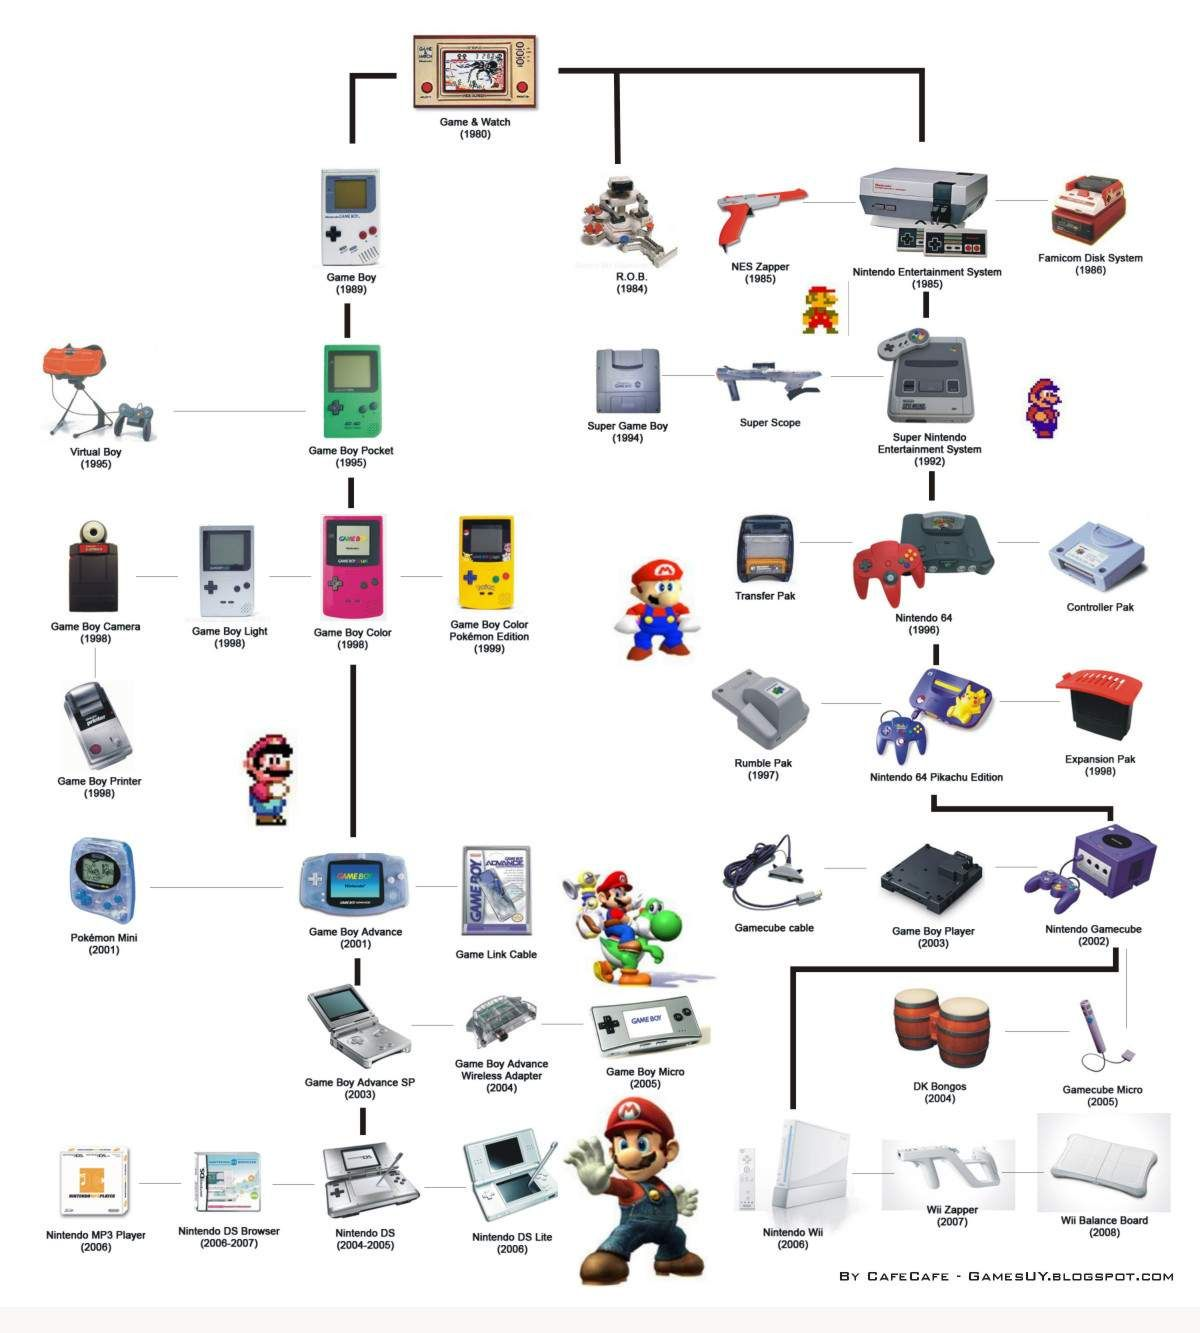 Nintendo Product Timeline... so one thing I want them all